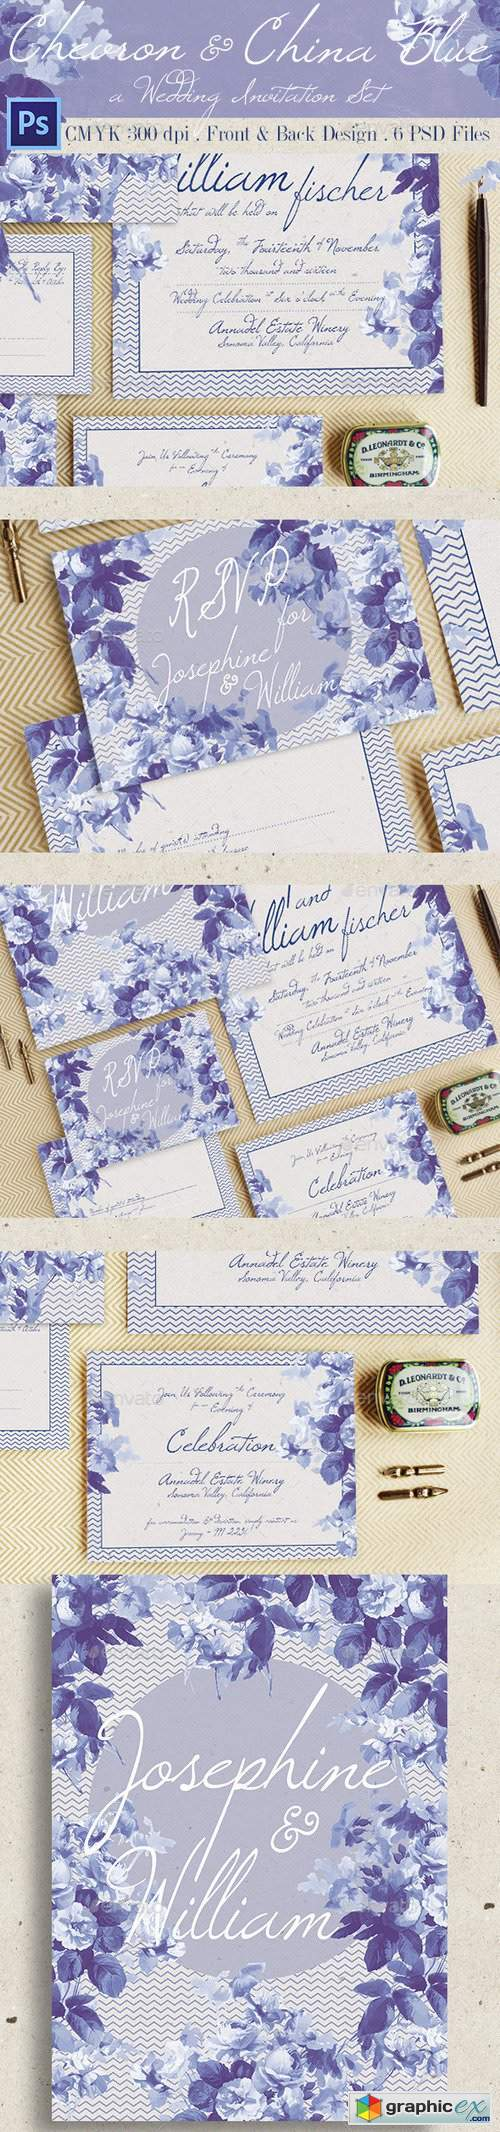 Chevron & China Blue Wedding Invitation